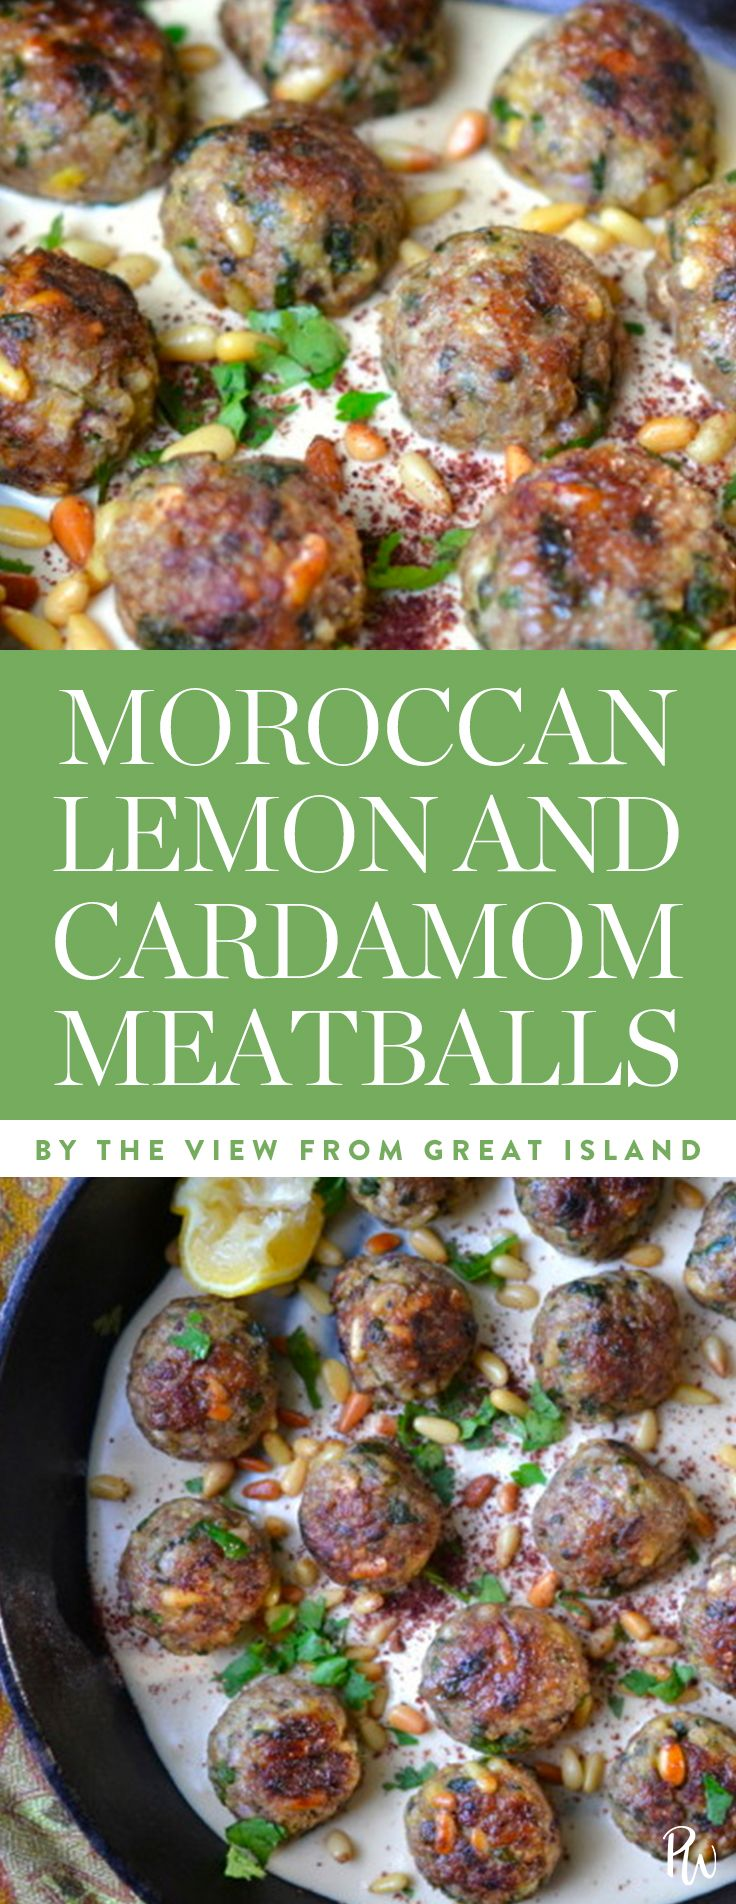 Moroccan Lemon Cardamom Meatballs by The View From The Great Island. 16 Moroccan-Inspired Recipes to Spice Things Up. #moroccanrecipes #moroccanfood #spicy #healthyrecipes #northafricanfood #dinnerrecipes #meatballs #moroccanmeatballs